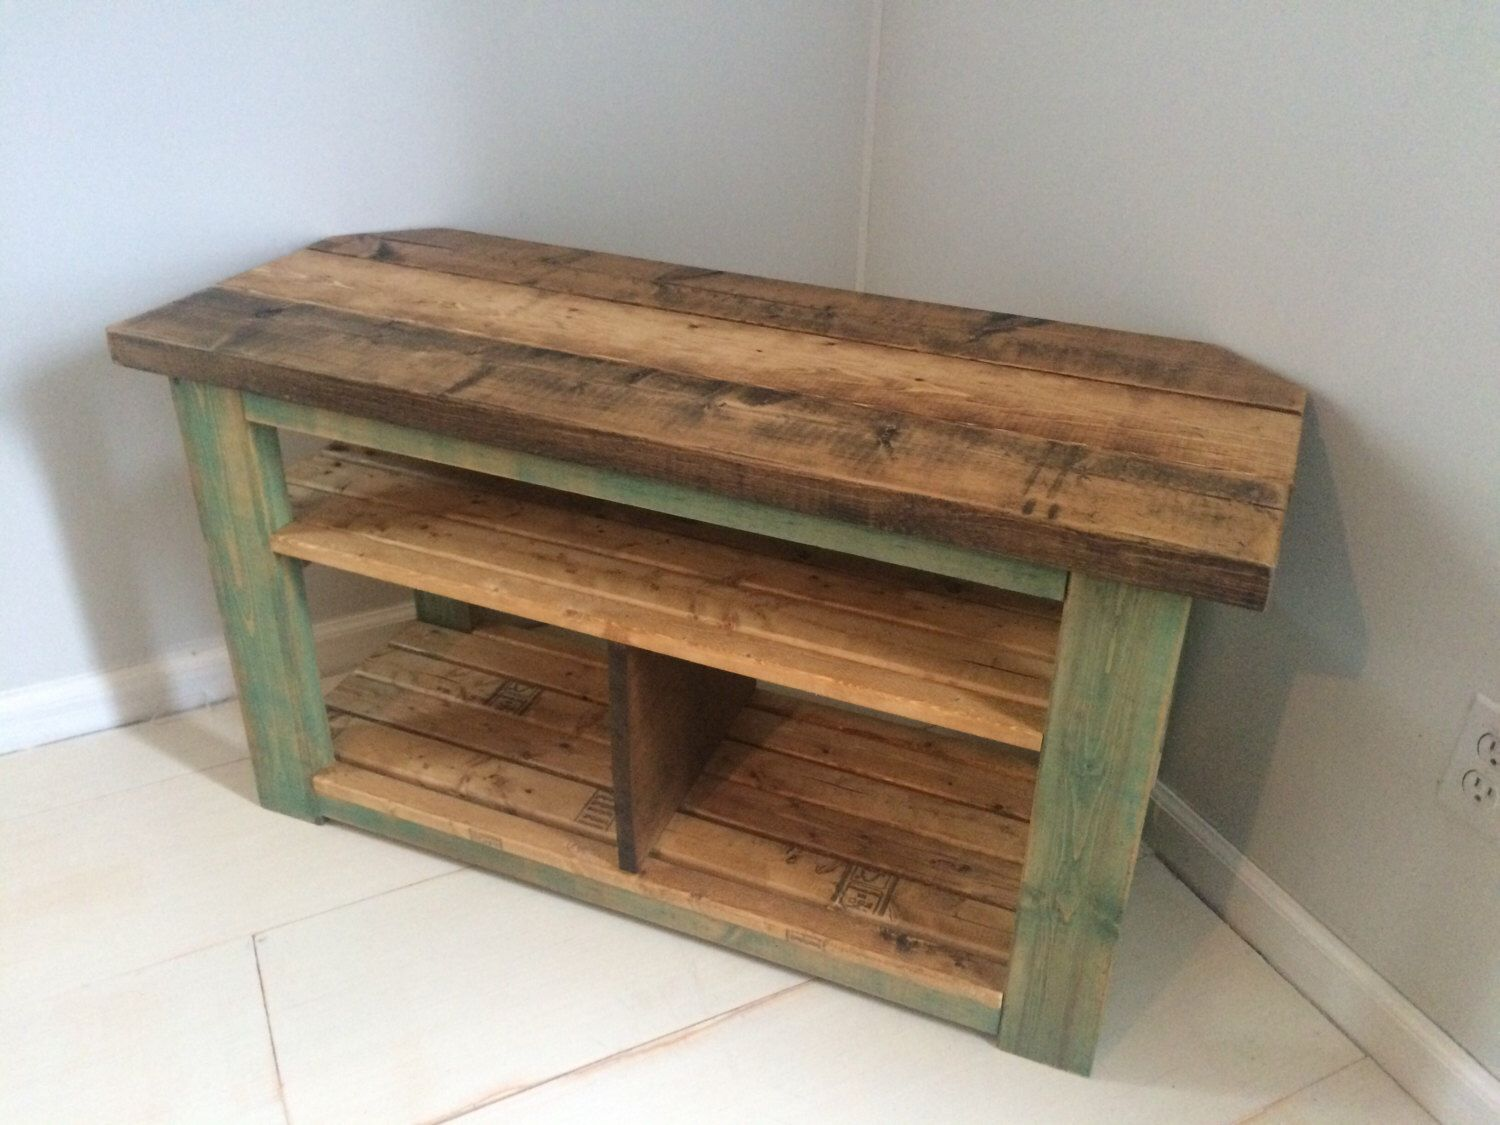 pin by christina bundrant on my builds my creativity corner tv stand rustic diy tv stand. Black Bedroom Furniture Sets. Home Design Ideas